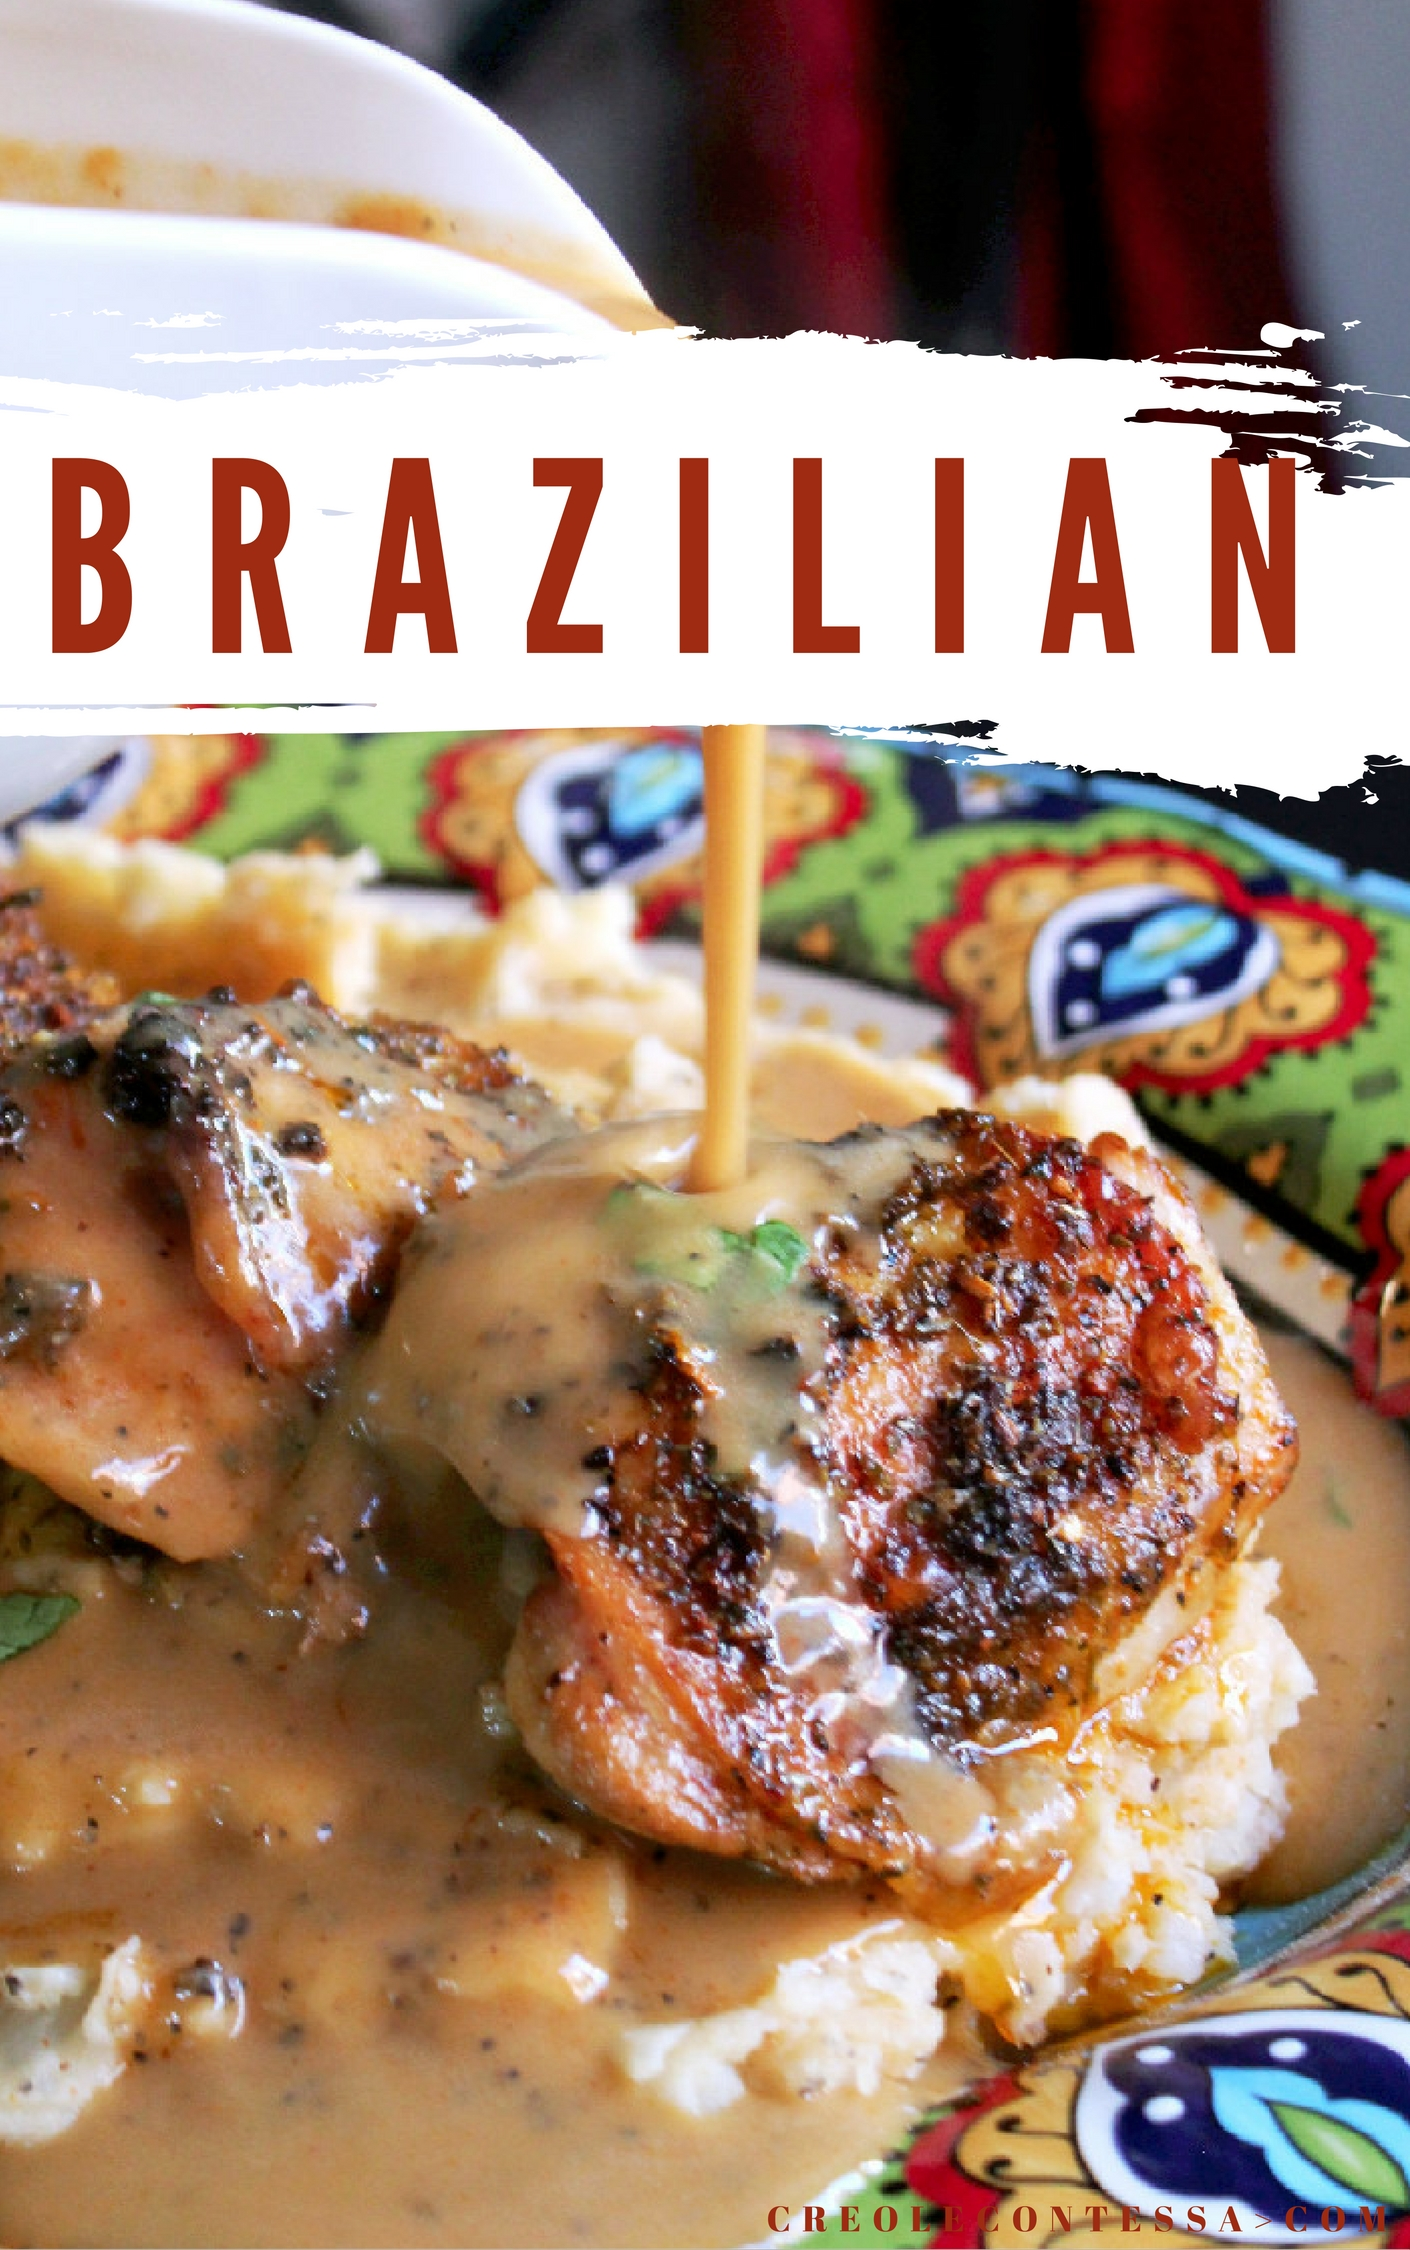 Brazilian Roasted Chicken-Creole Contessa